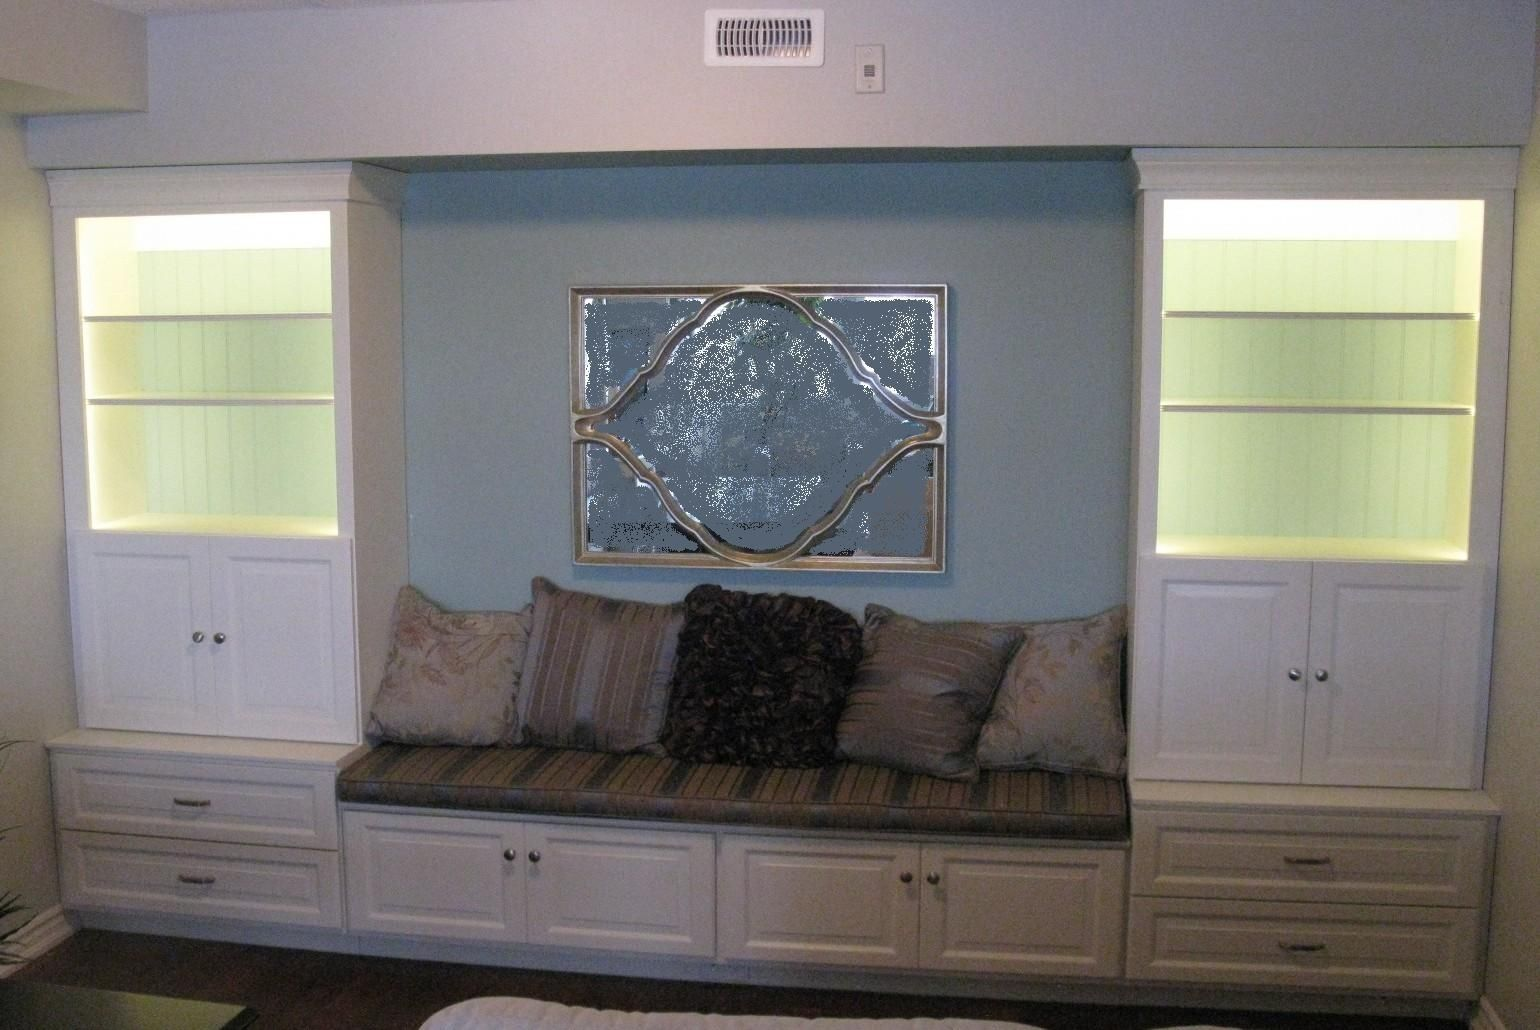 Hand crafted contemporary built in bench seat and storage display